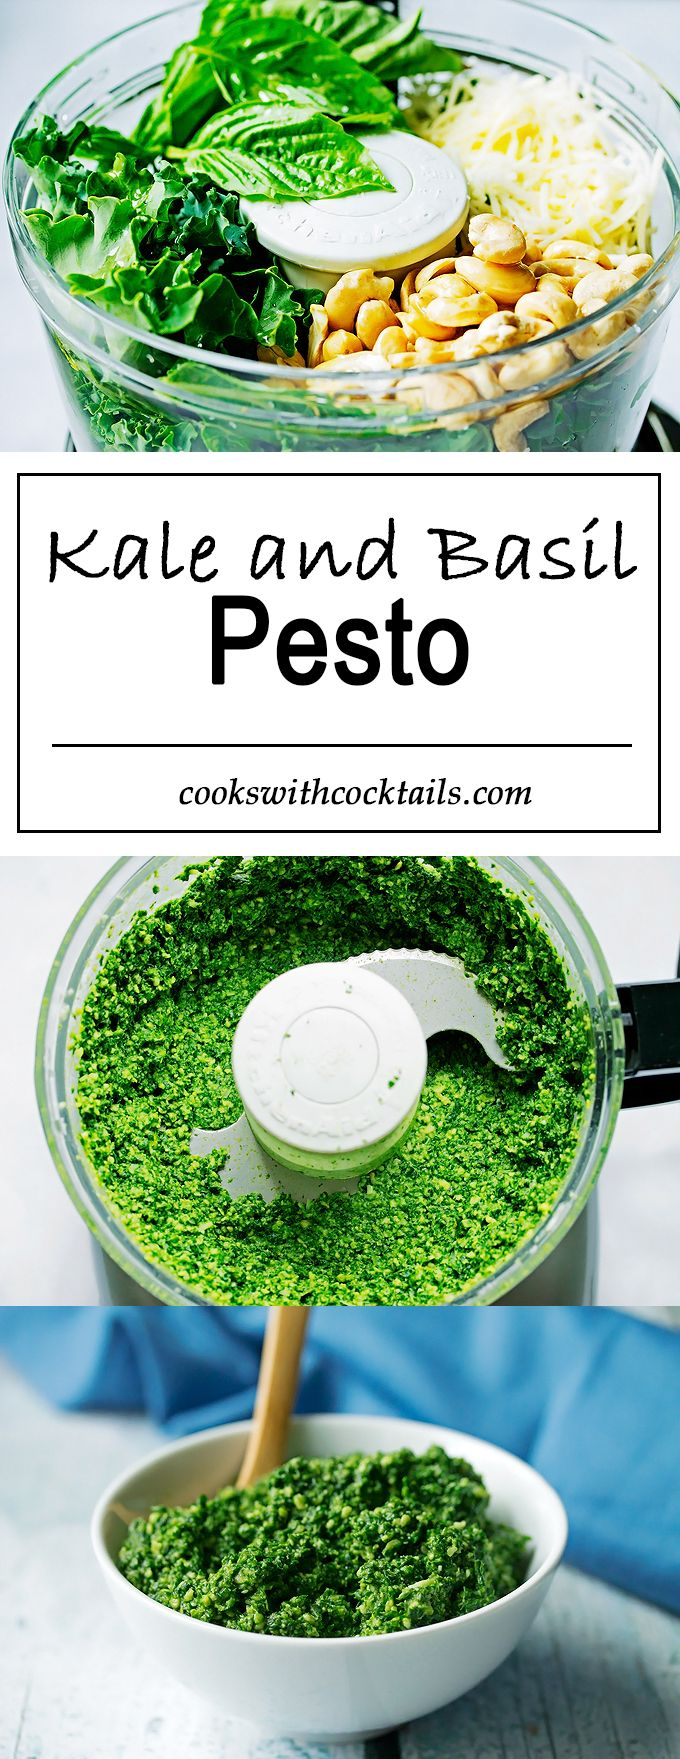 Garlicy, fresh and fragrant with a tiny chew to it and with a huge dose of Kale, even healthier than the traditional version.  This pesto will go well with any pasta dish or crostinis for that matter.  #pastasauce #veggies #healthyeating